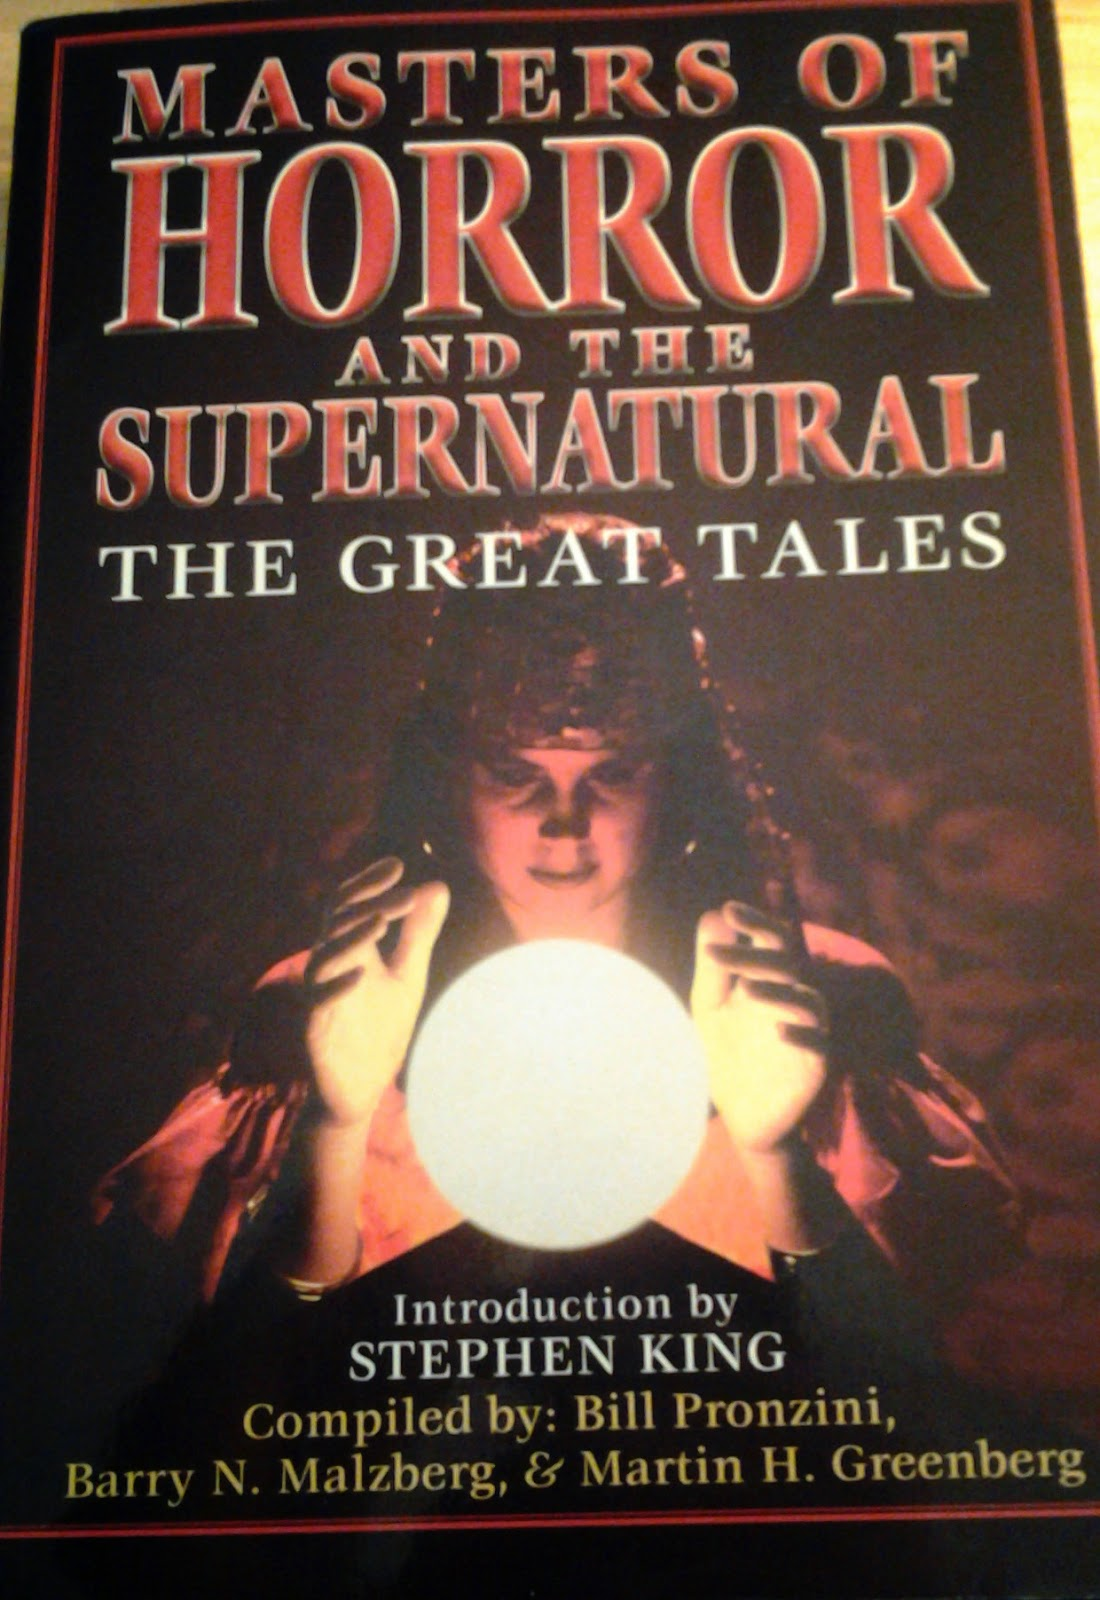 Masters of Horror and Supernatural Great Tales